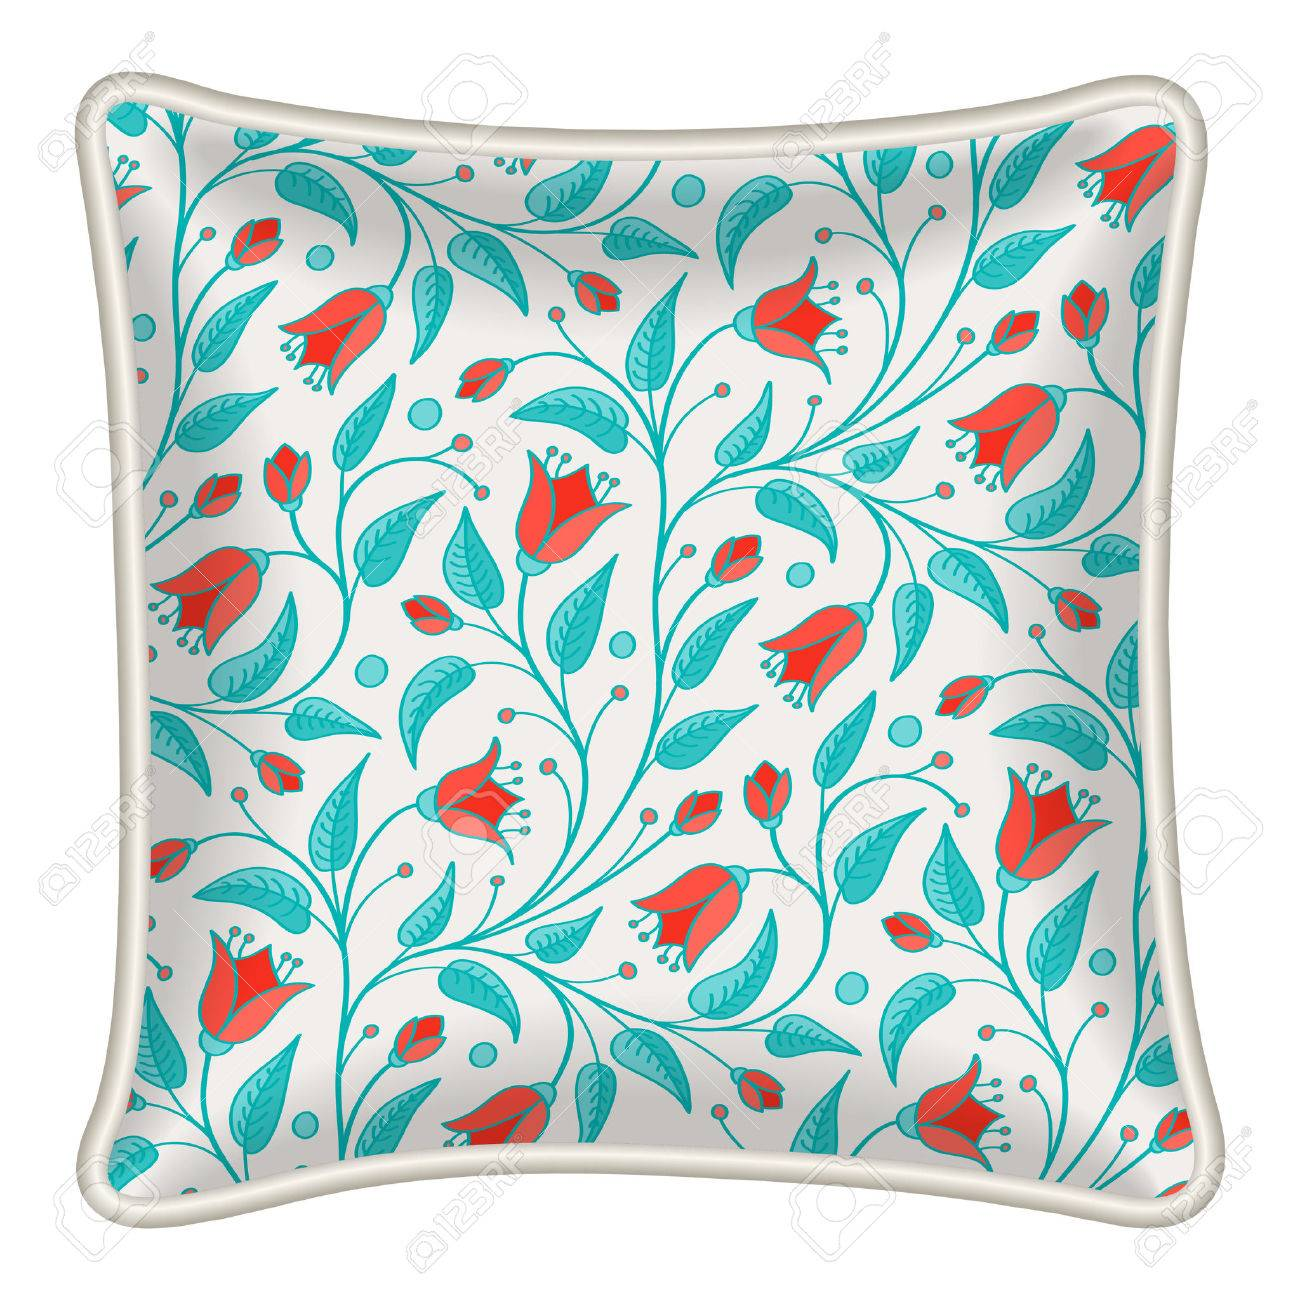 Interior Design Element Decorative Pillow With Patterned Pillowcase Natural Floral Pattern Isolated On White Vector Illustration